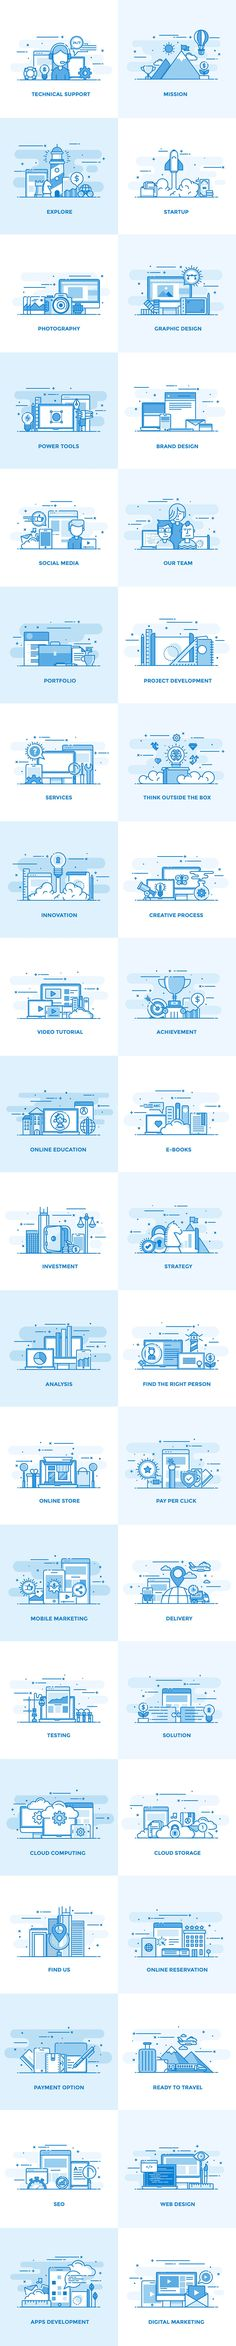 Flat Line Color Conceptual Icons by Creative Graphics on @creativemarket